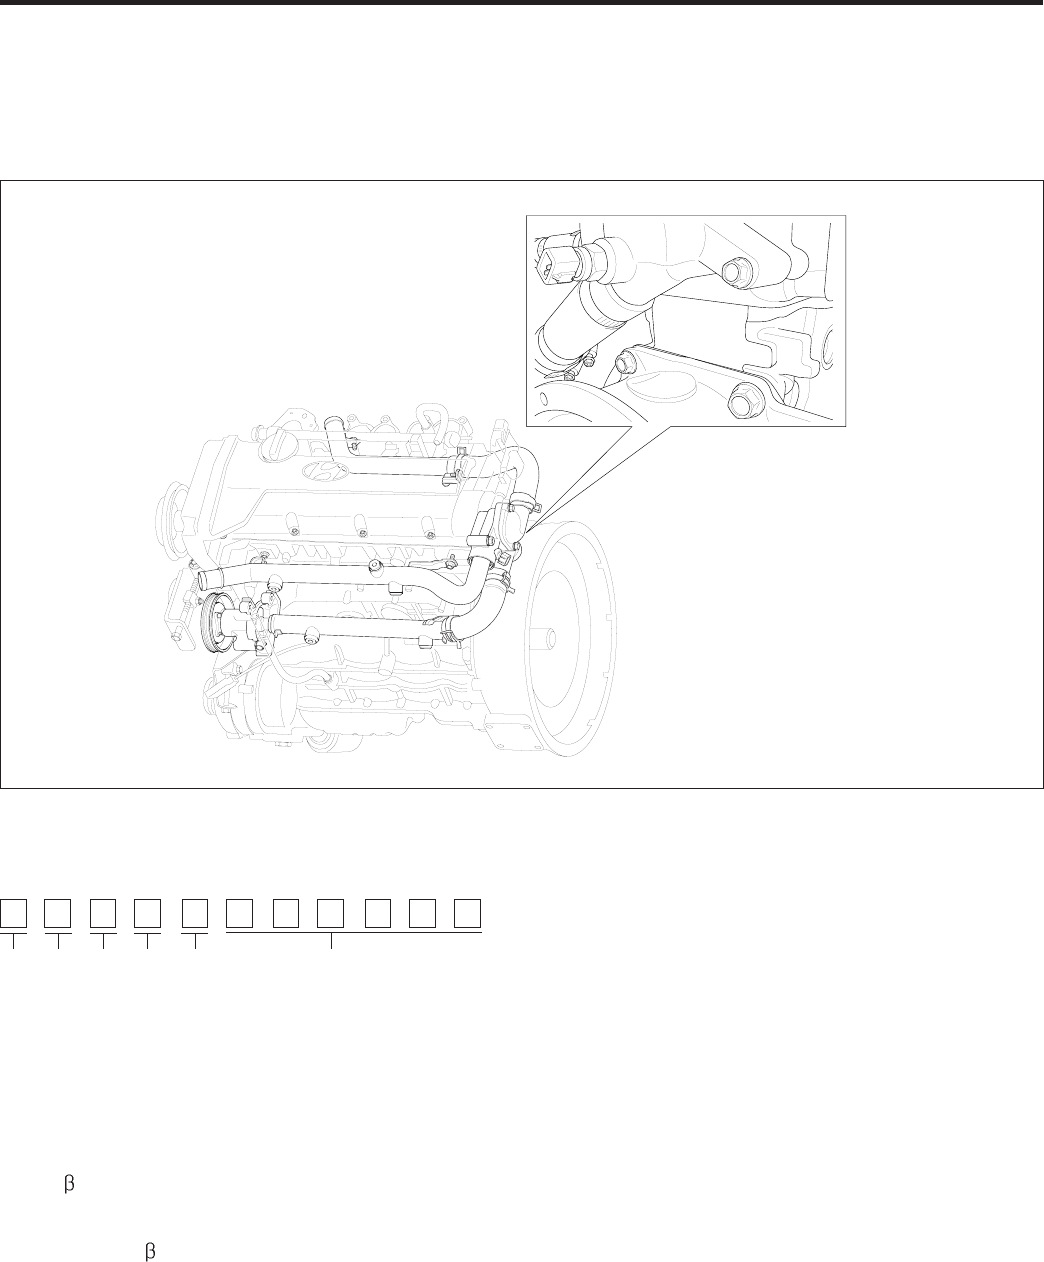 Hyundai Accent Leak Detection Pump Wiring Connectoir